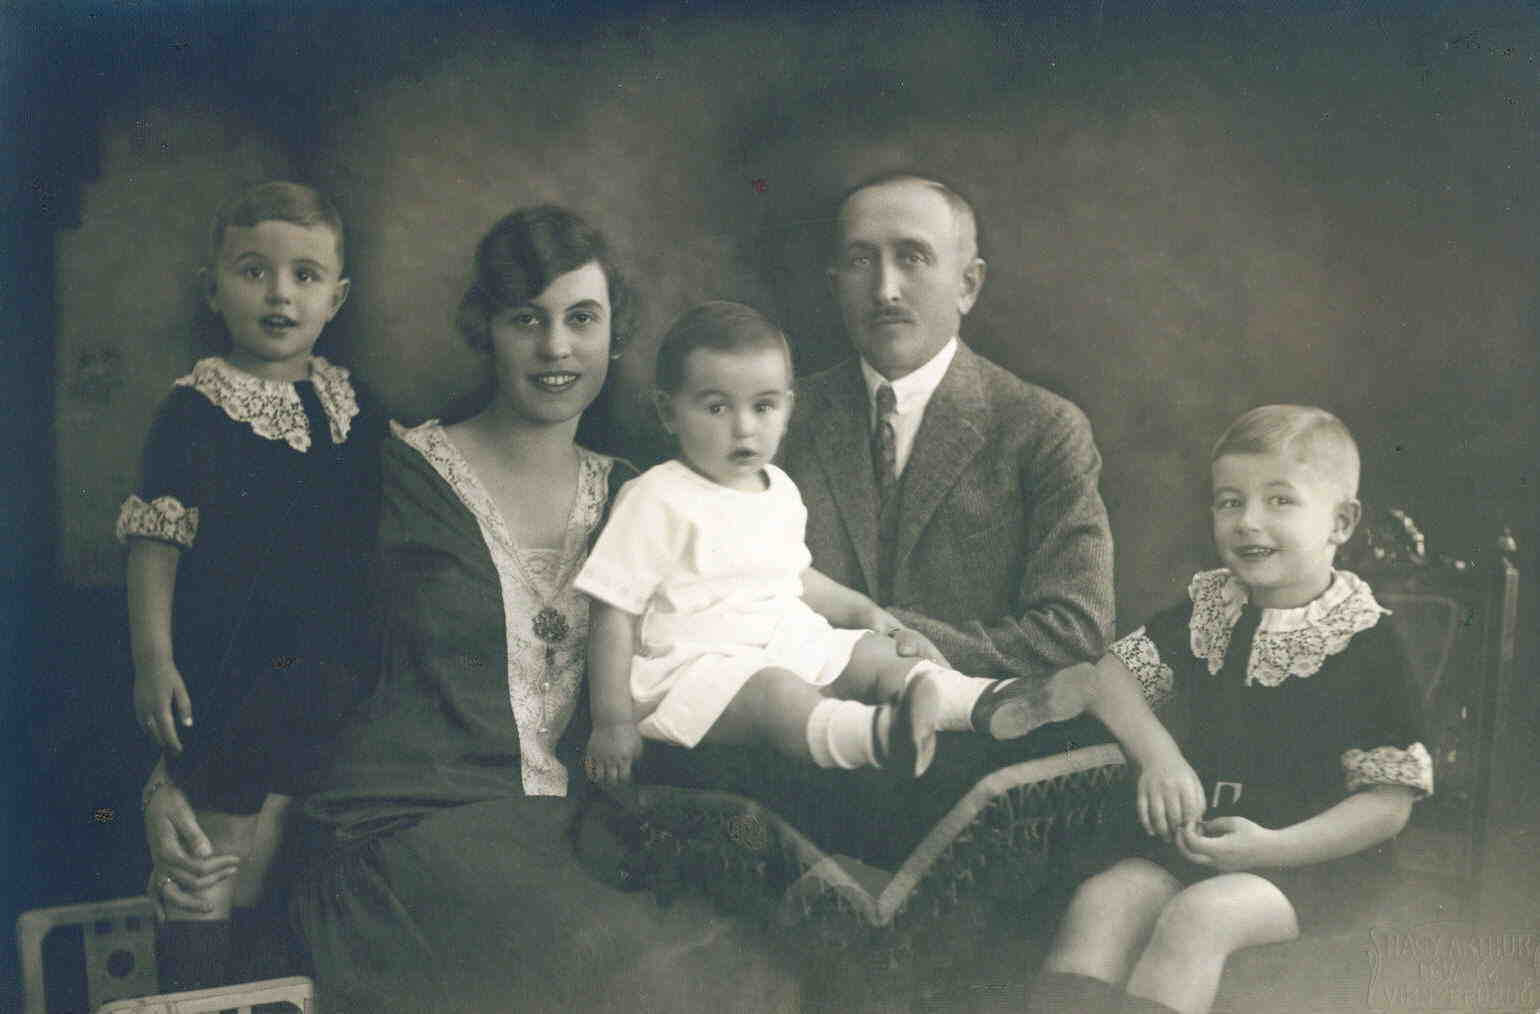 Mihalyi Family Photograph 1928